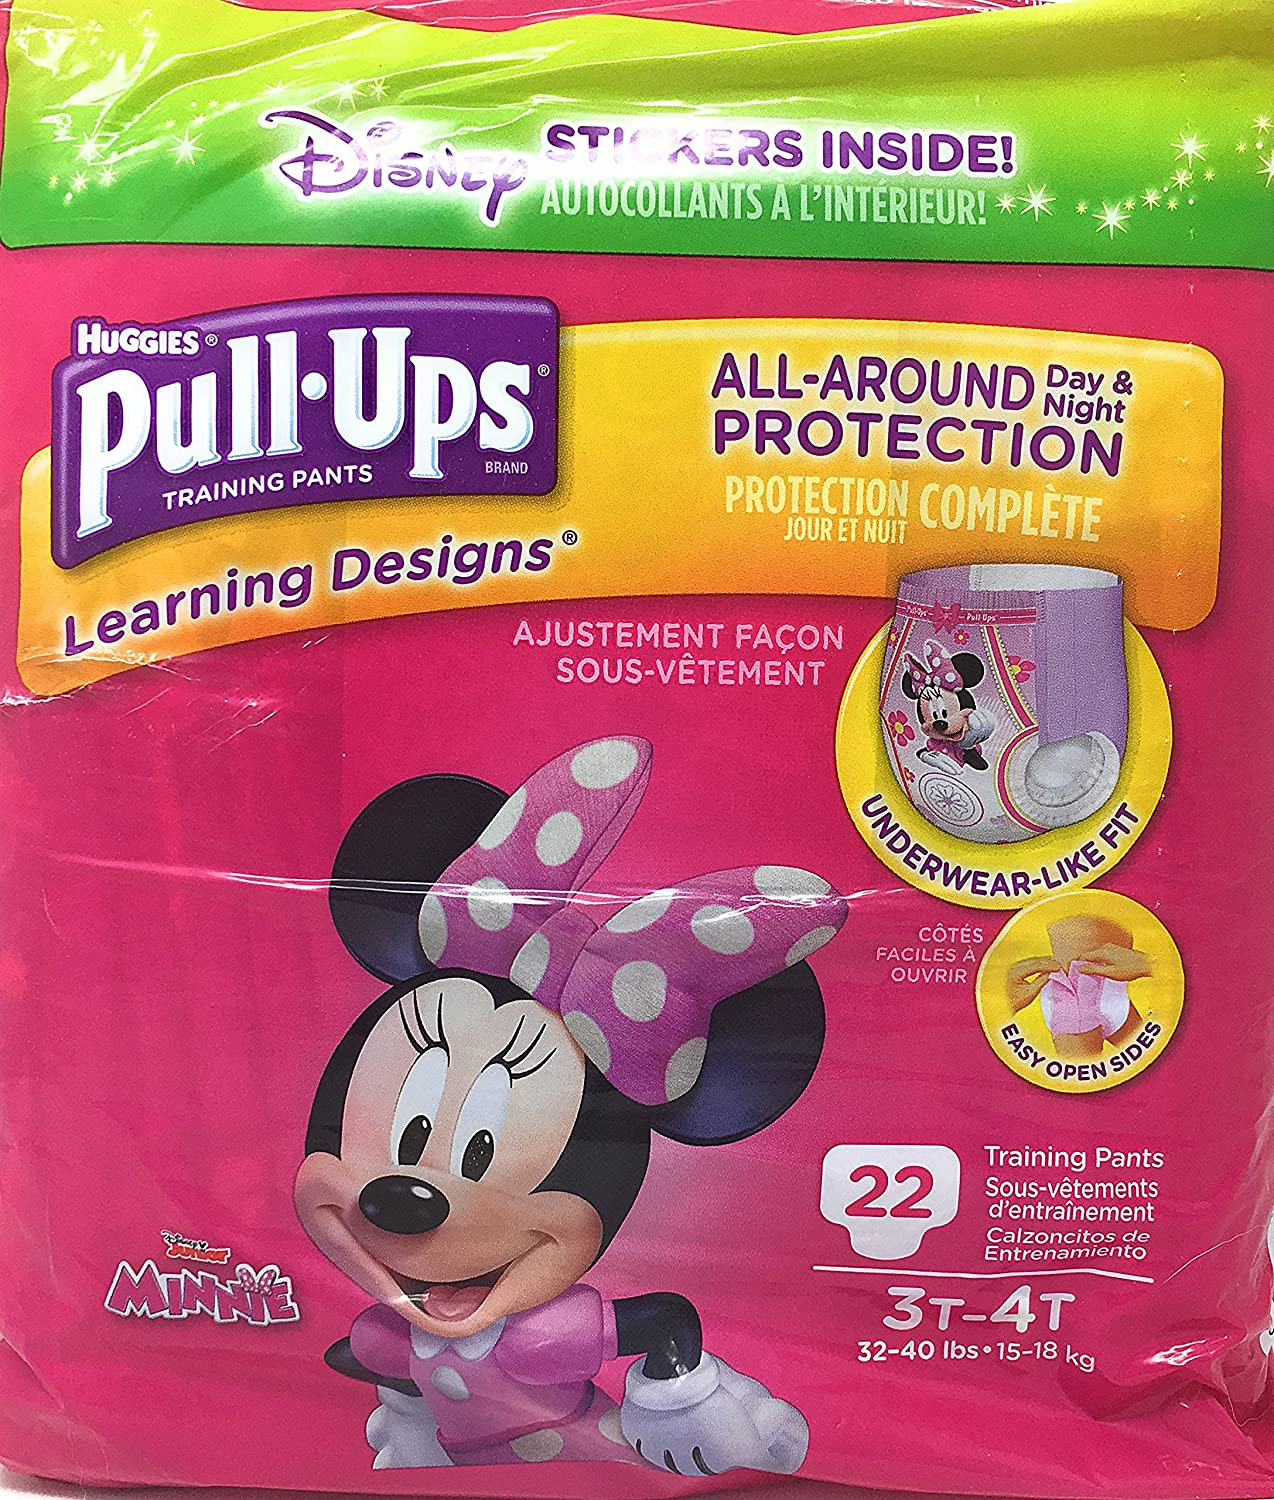 Pull-Ups Learning Designs Training Pants for Girls, 3T-4T, 22 count Kimberly-Clark 4332391477